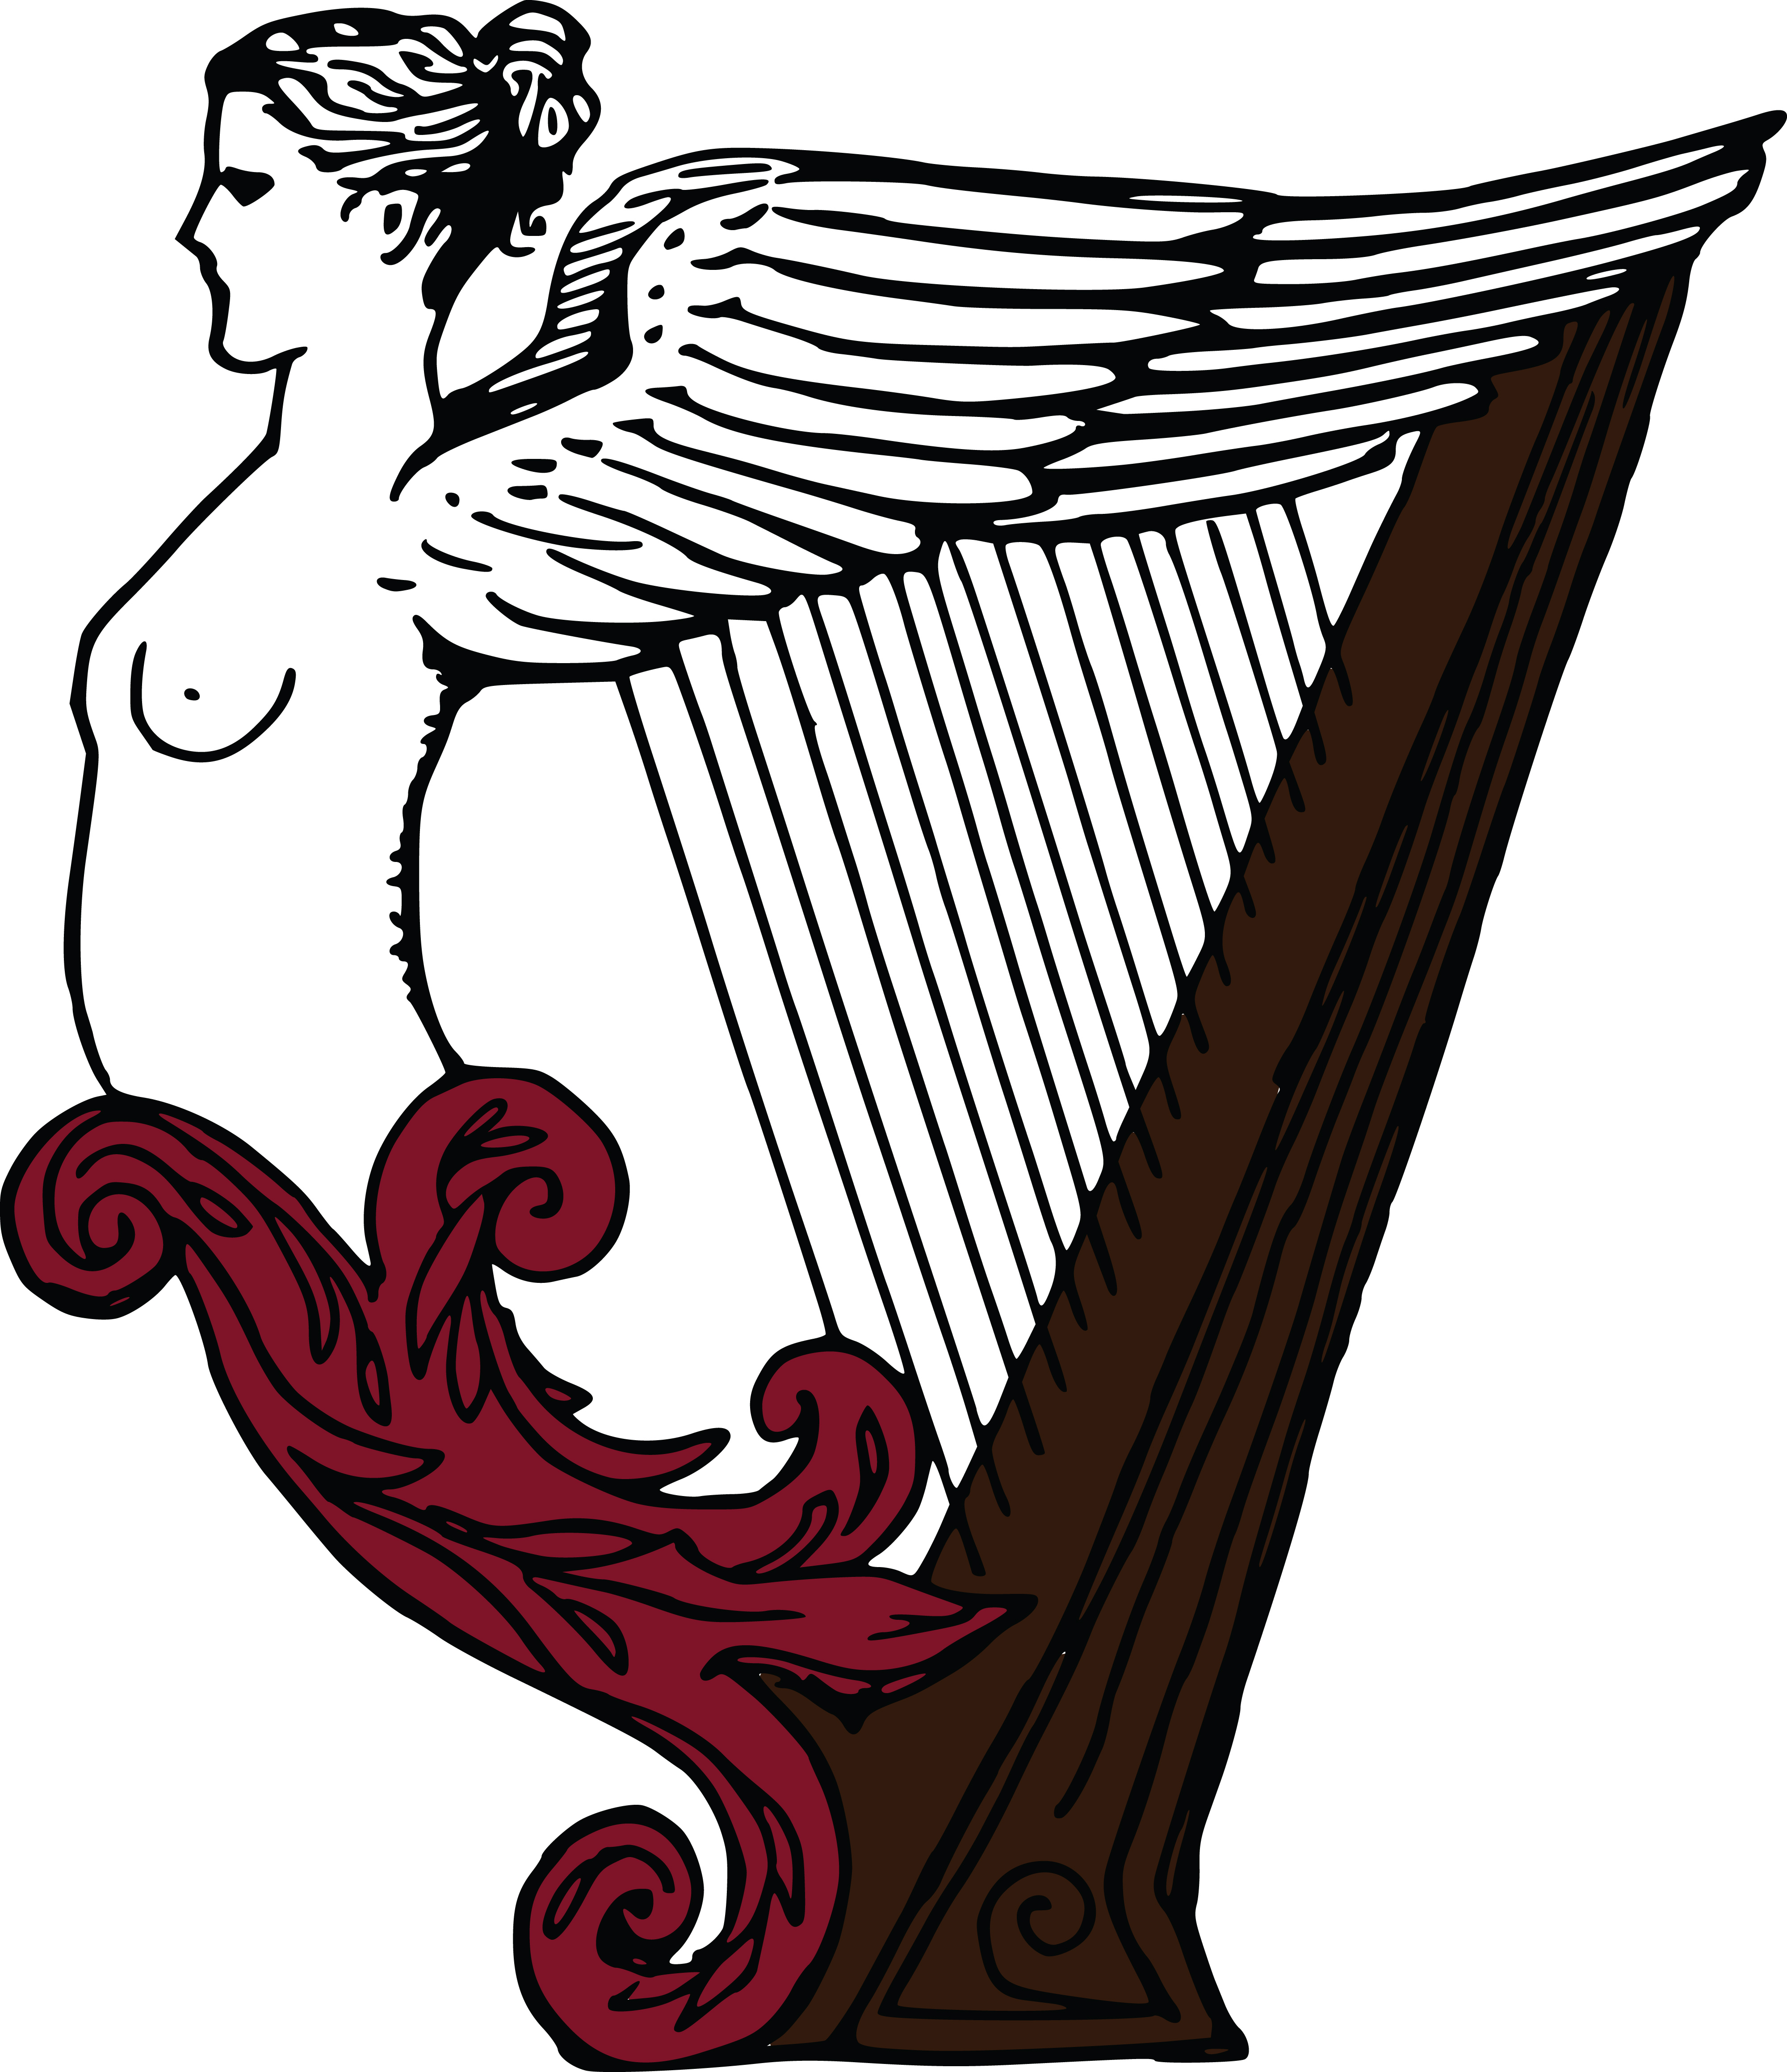 Free Clipart Of A female angel harp.